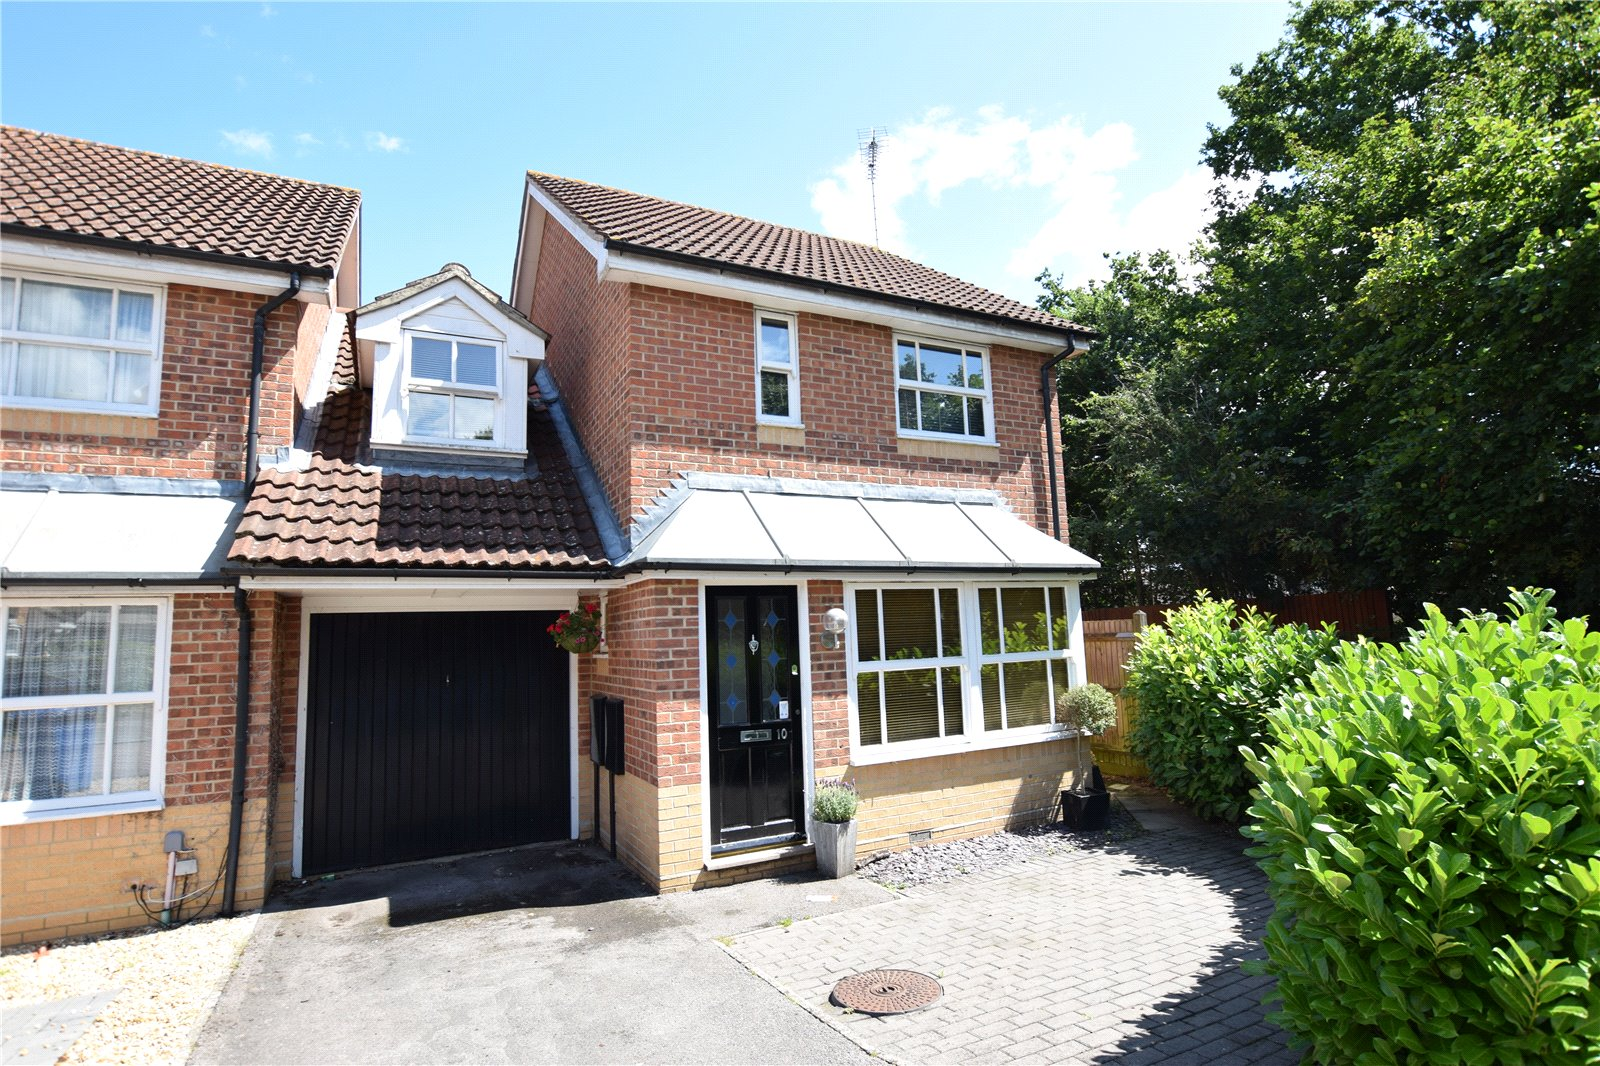 3 Bedrooms Semi Detached House for sale in Wallcroft Close, Binfield, Bracknell, Berkshire, RG42